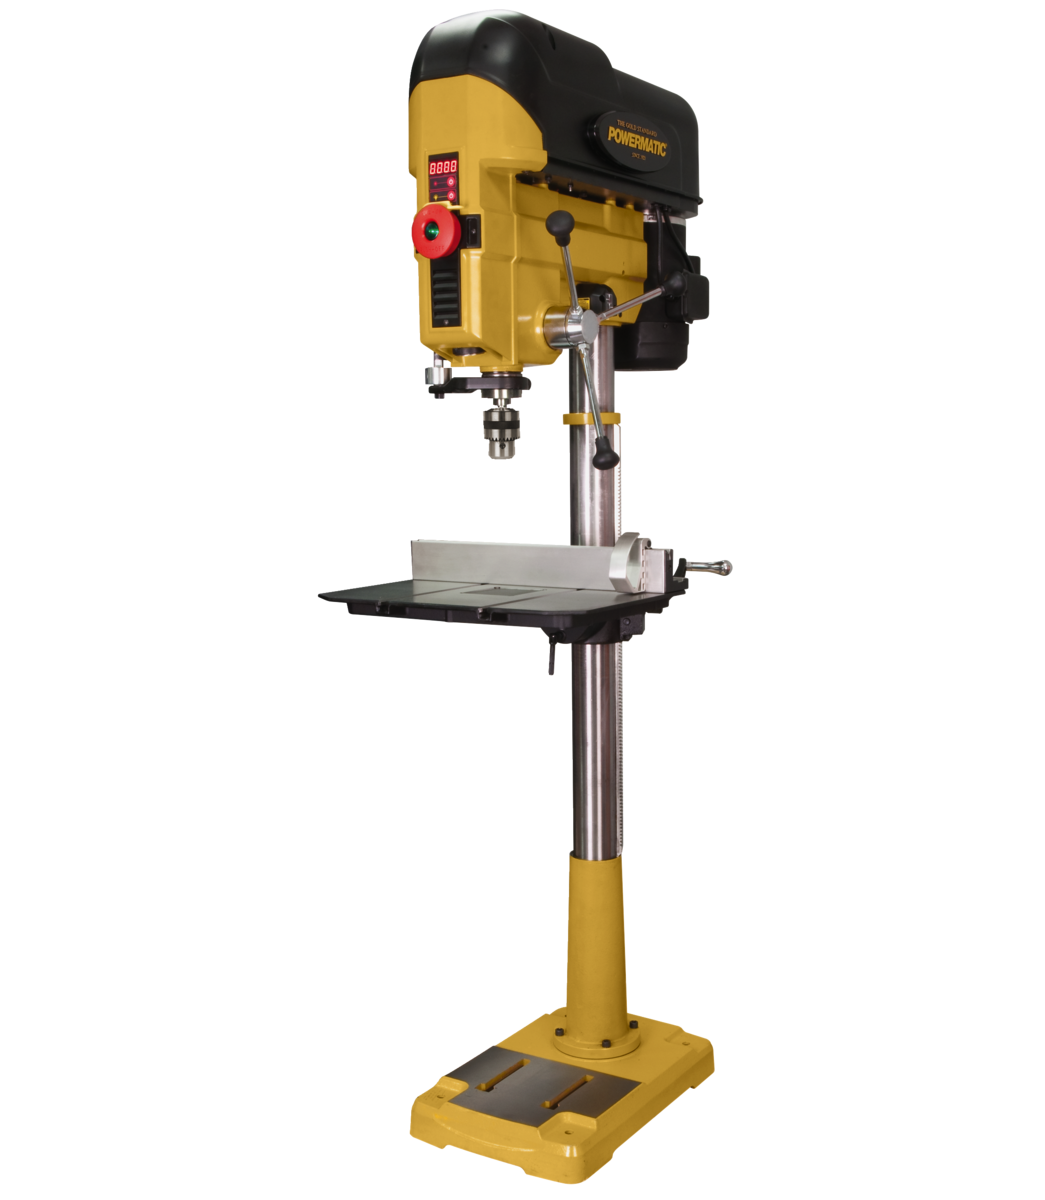 PM2800B Drill Press, 1HP 1PH 115/230V